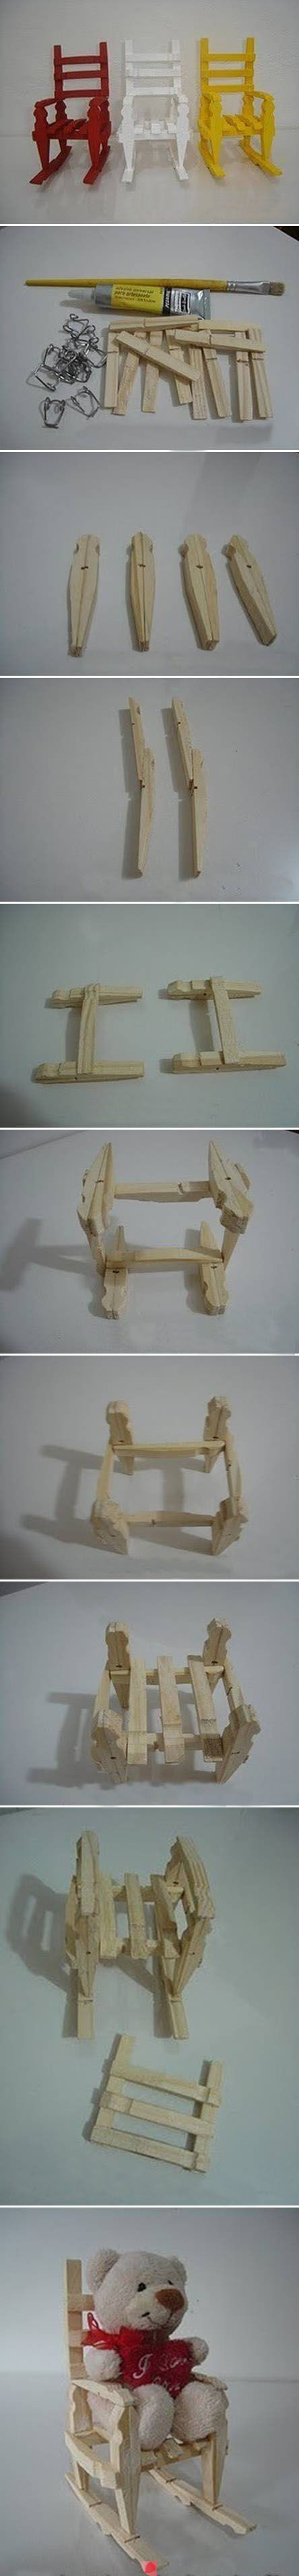 images about Tiny Handmade Furniture and Things on Pinterest